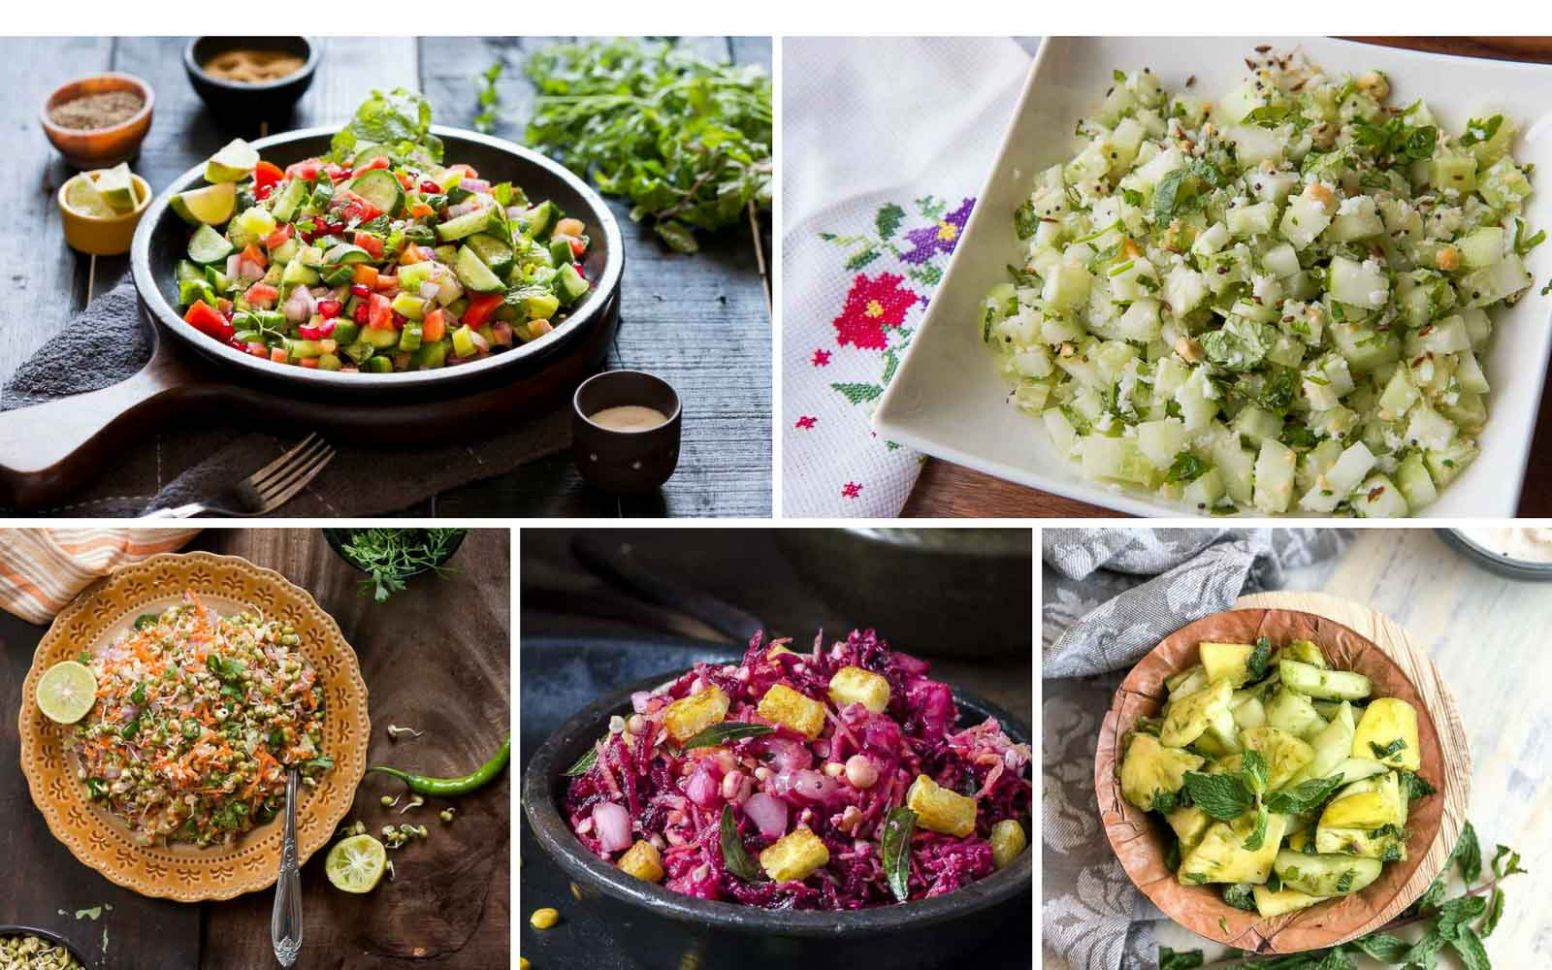 12 Super Healthy Indian Salad Recipes To Make Right Now by ..